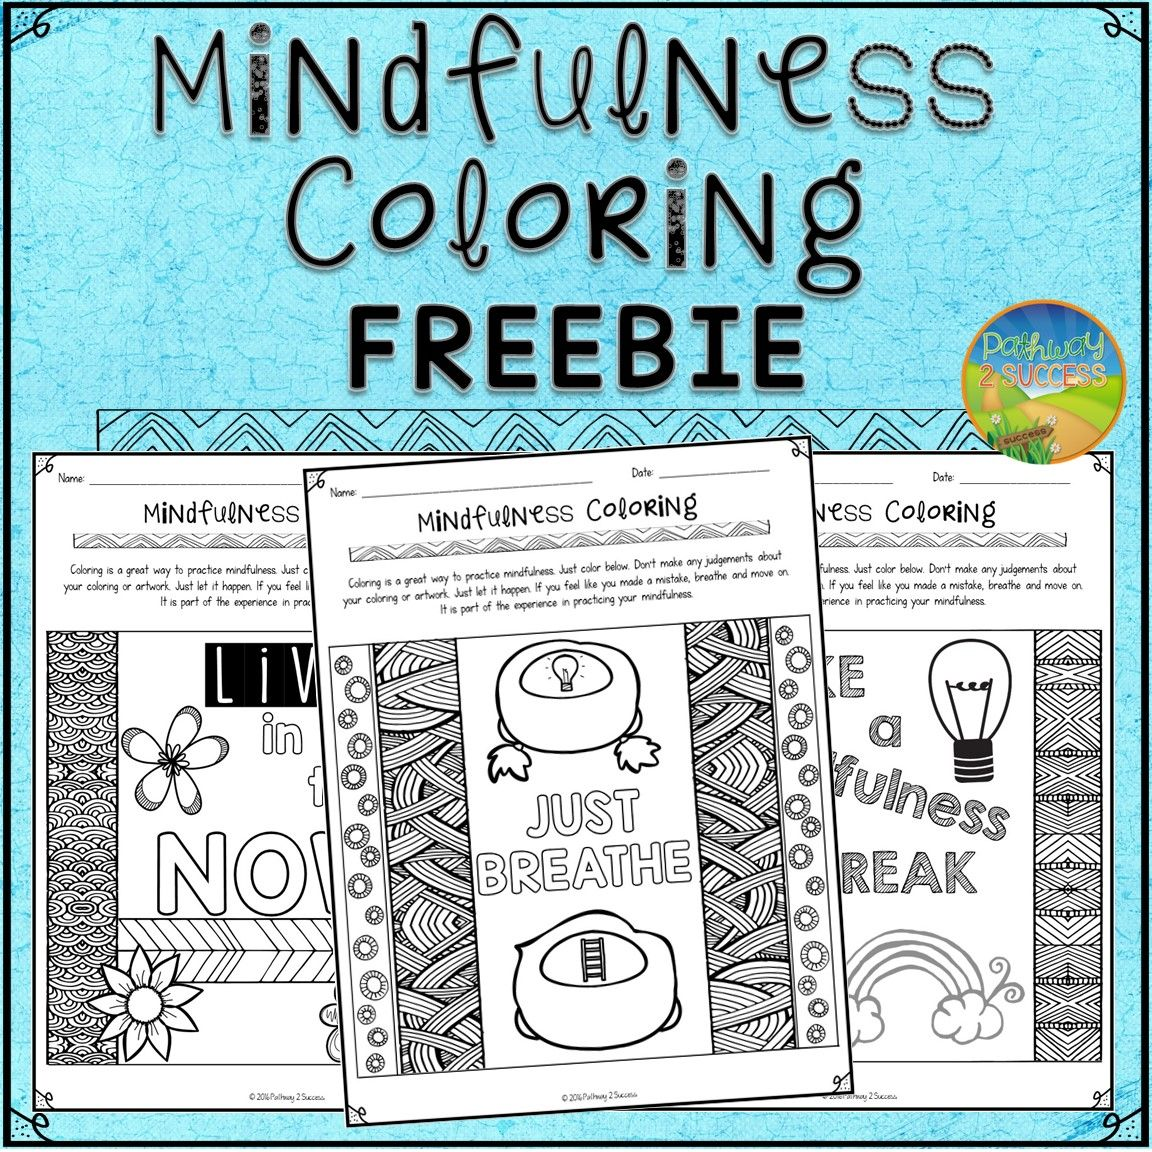 Use These Free Coloring Pages To Help Kids And Young Adults Practice Mindfulness To Help Promote